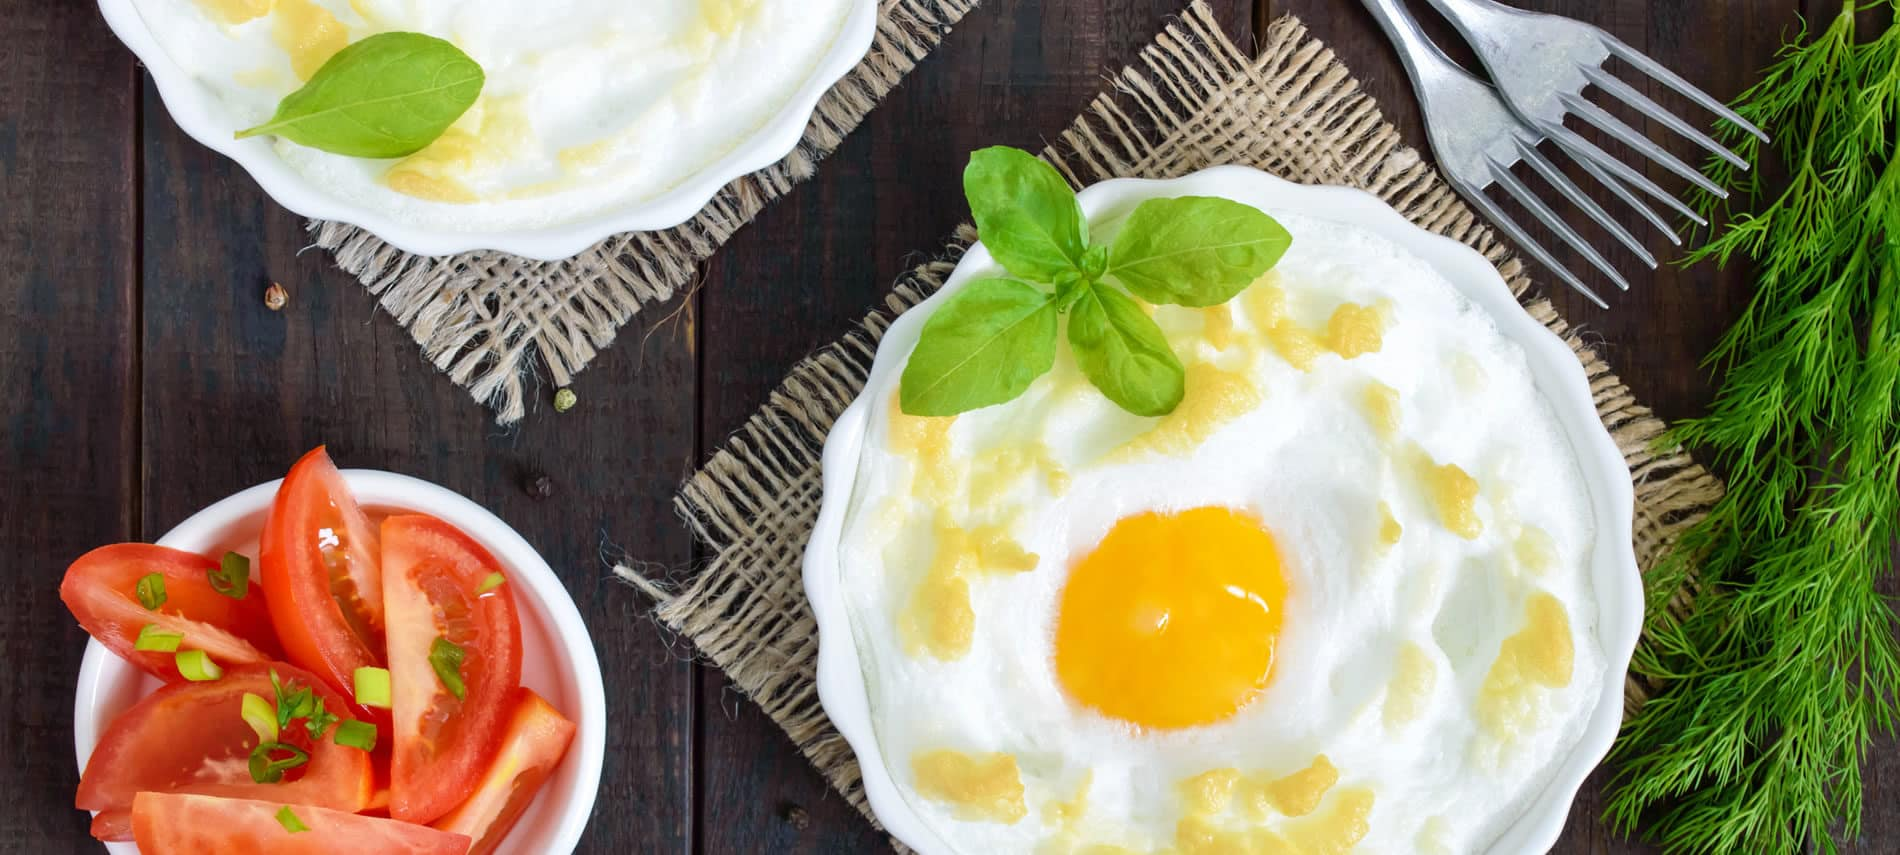 fresh tomatoes, eggs in a cloud on burlap placemat